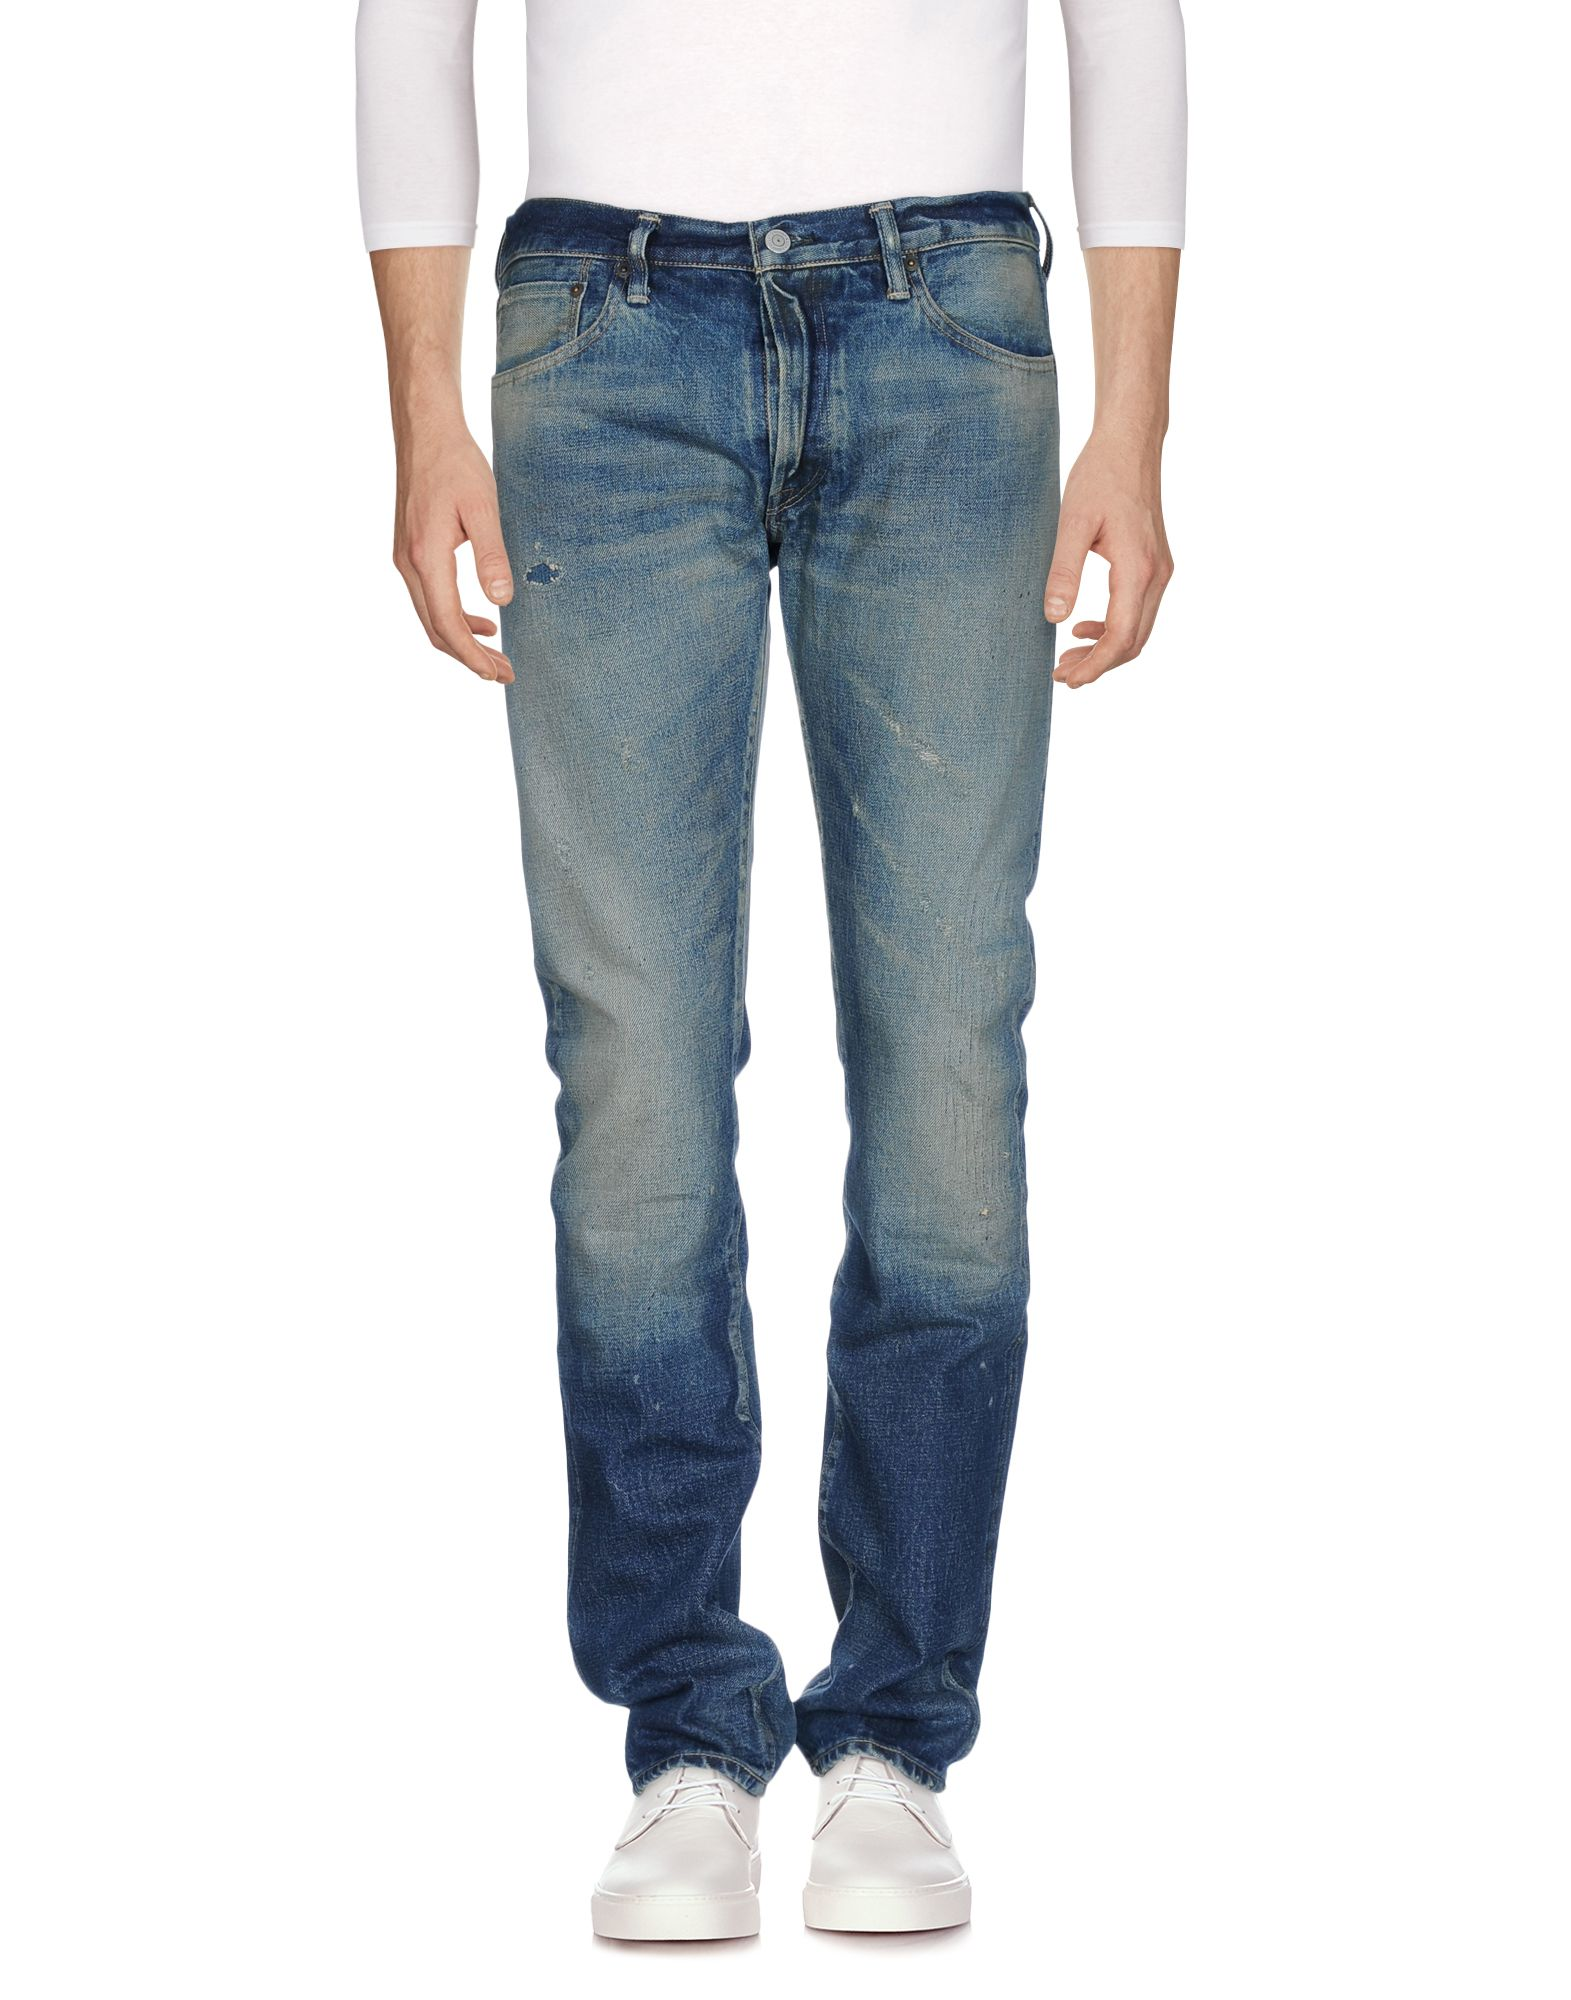 Pantaloni Jeans Fabric-Brand & Co. Uomo - Acquista online su